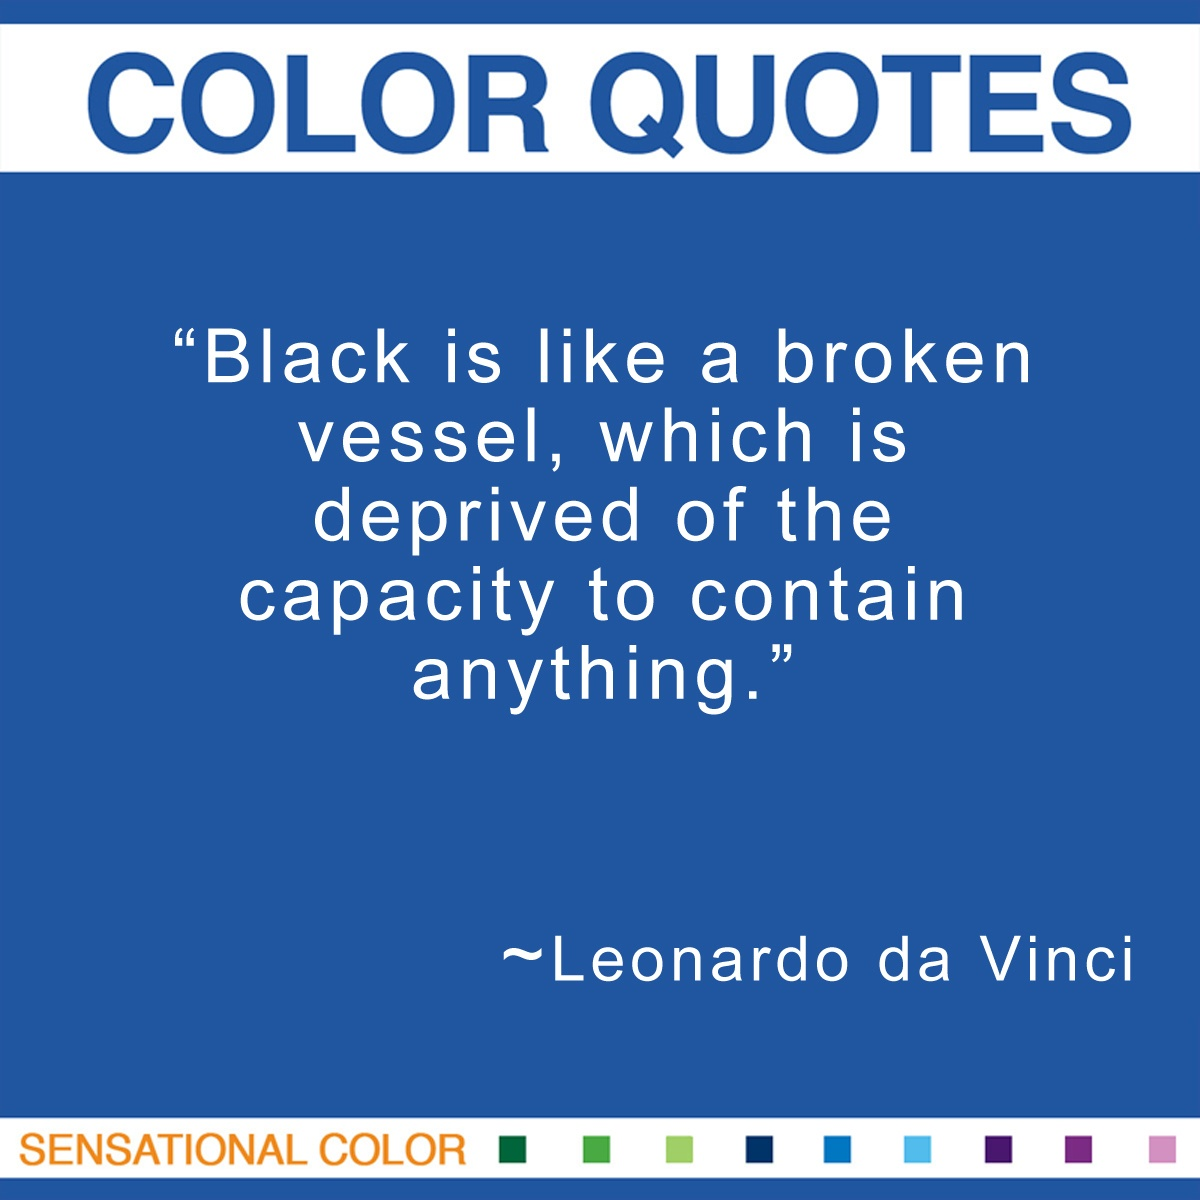 """Black is like a broken vessel, which is deprived of the capacity to contain anything."" - Leonardo da Vinci"